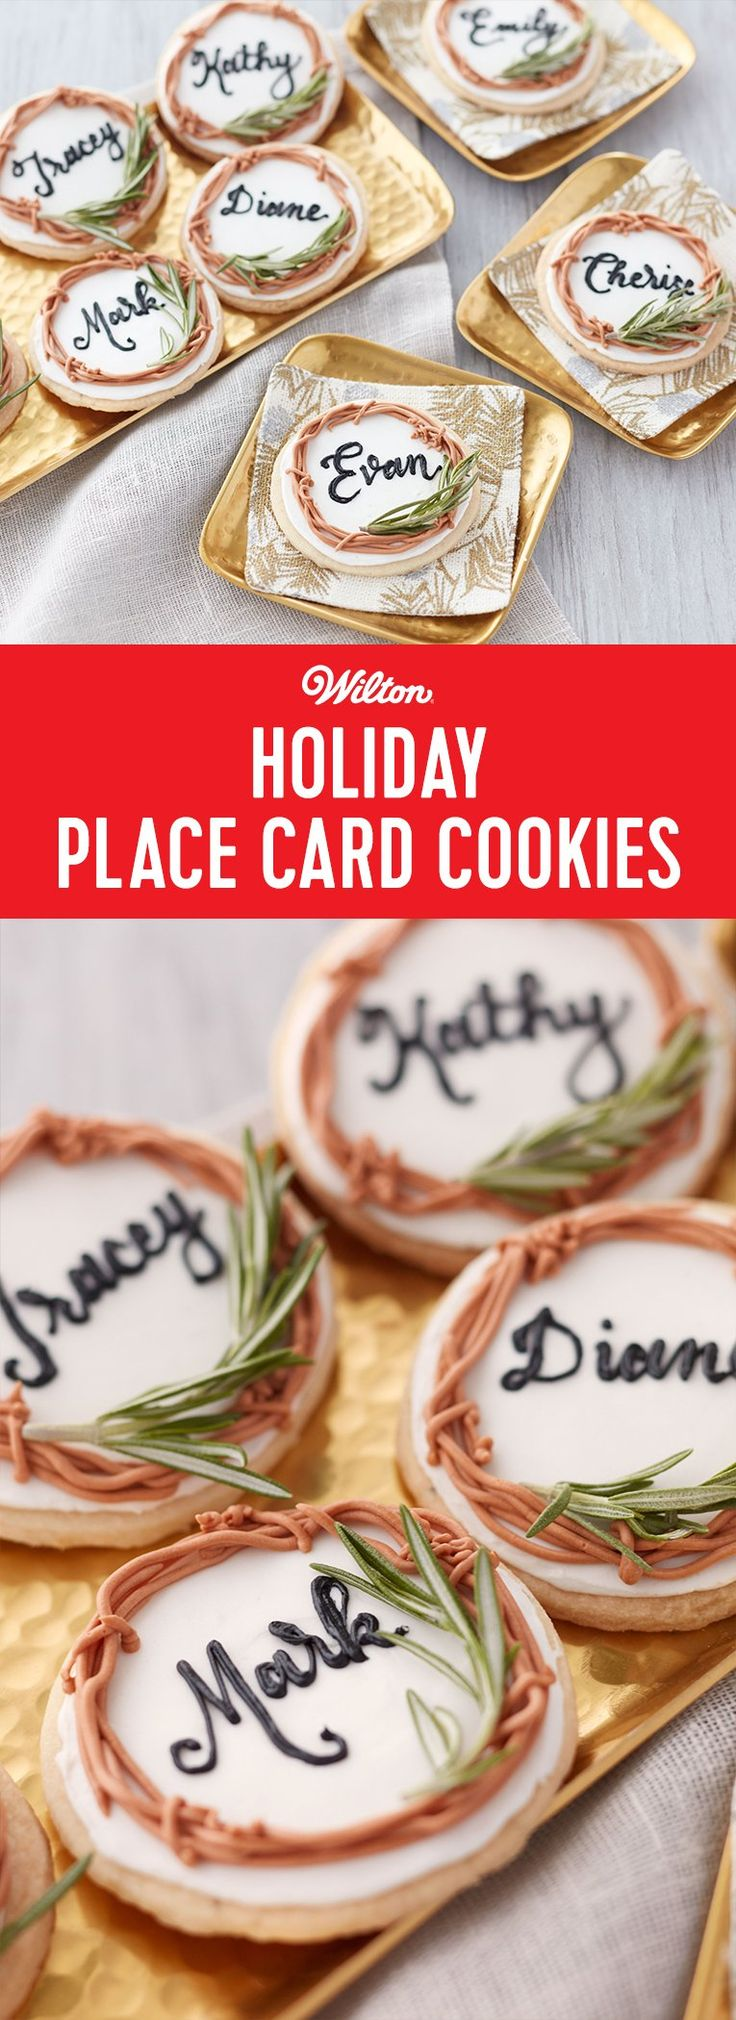 How to Make Holiday Place Card Cookies - Customizable cookie place cards? Your holiday guests will say 'yes, please' and 'thank you' for these yummy nameplates in their honor at your Christmas, Hanukah or New Year's Eve dinner table. Made from sweet and savory rosemary-lemon shortbread cookies and decorated with royal icing, they are the perfect start and end to a celebratory feast with friends and family. Recipe makes about 12 cookies.